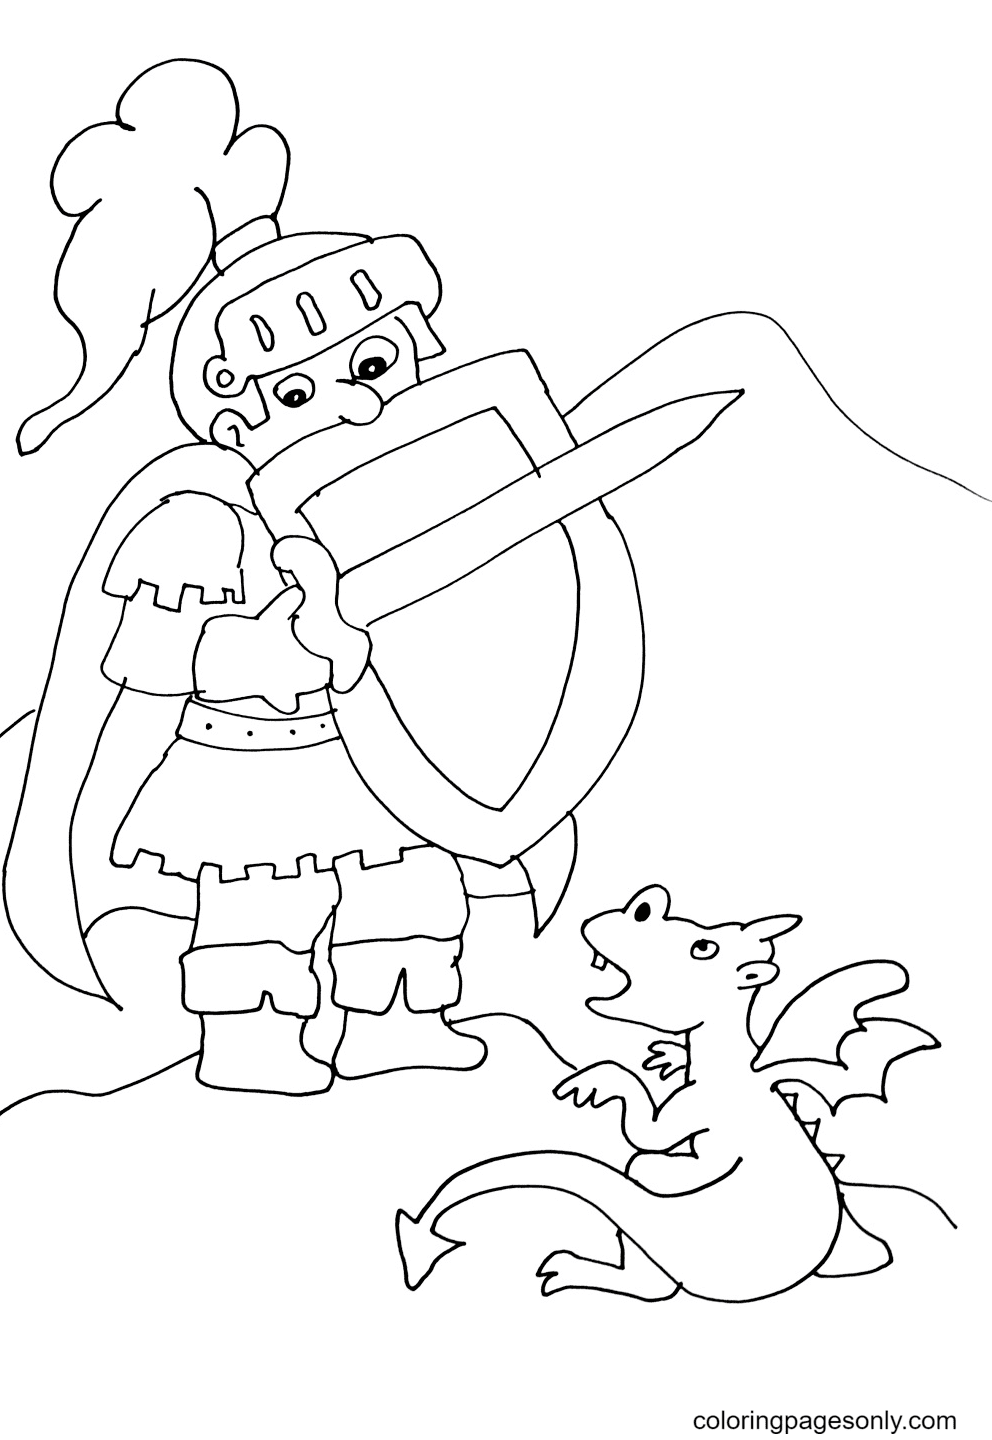 Knight and Baby Dragon Coloring Page